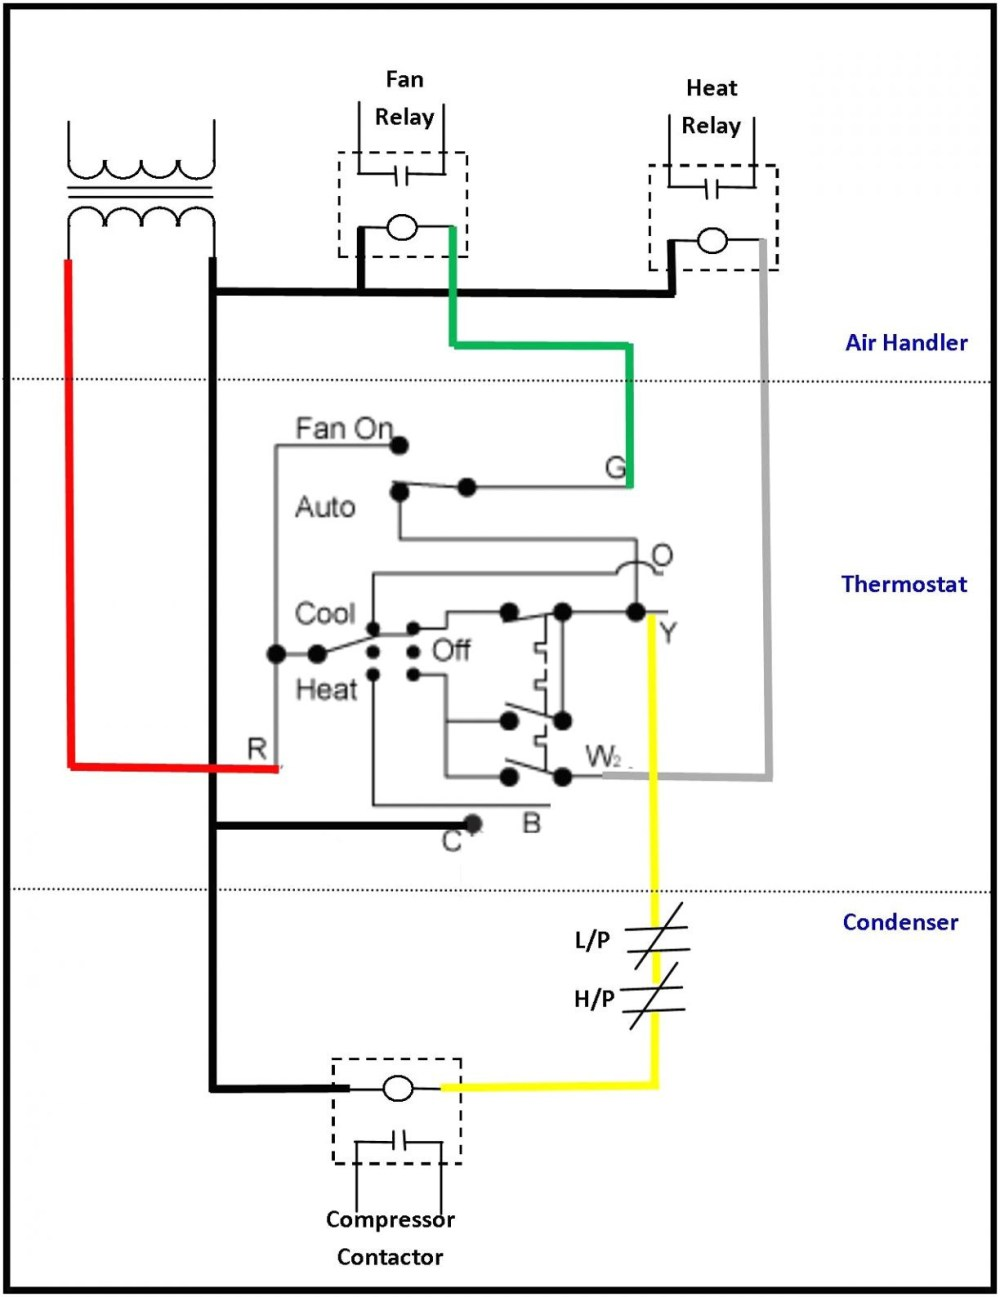 medium resolution of coleman evcon thermostat wiring diagram downloadcoleman evcon thermostat wiring diagram wiring a ac thermostat diagram save